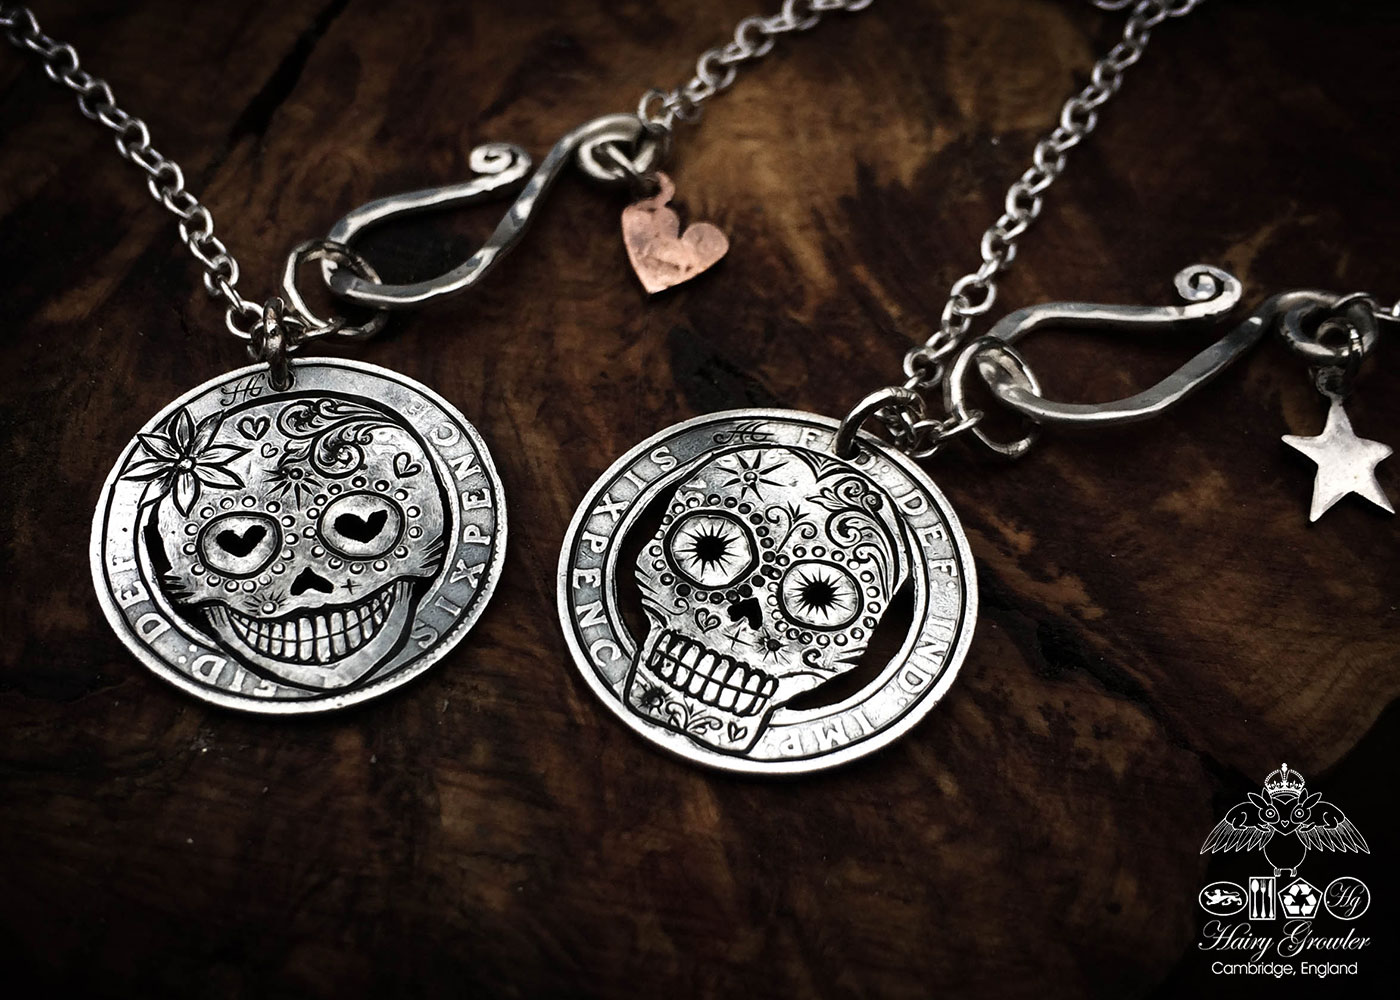 Hand-cut and recycled silver sixpence coin day-of-the-dead skull necklace